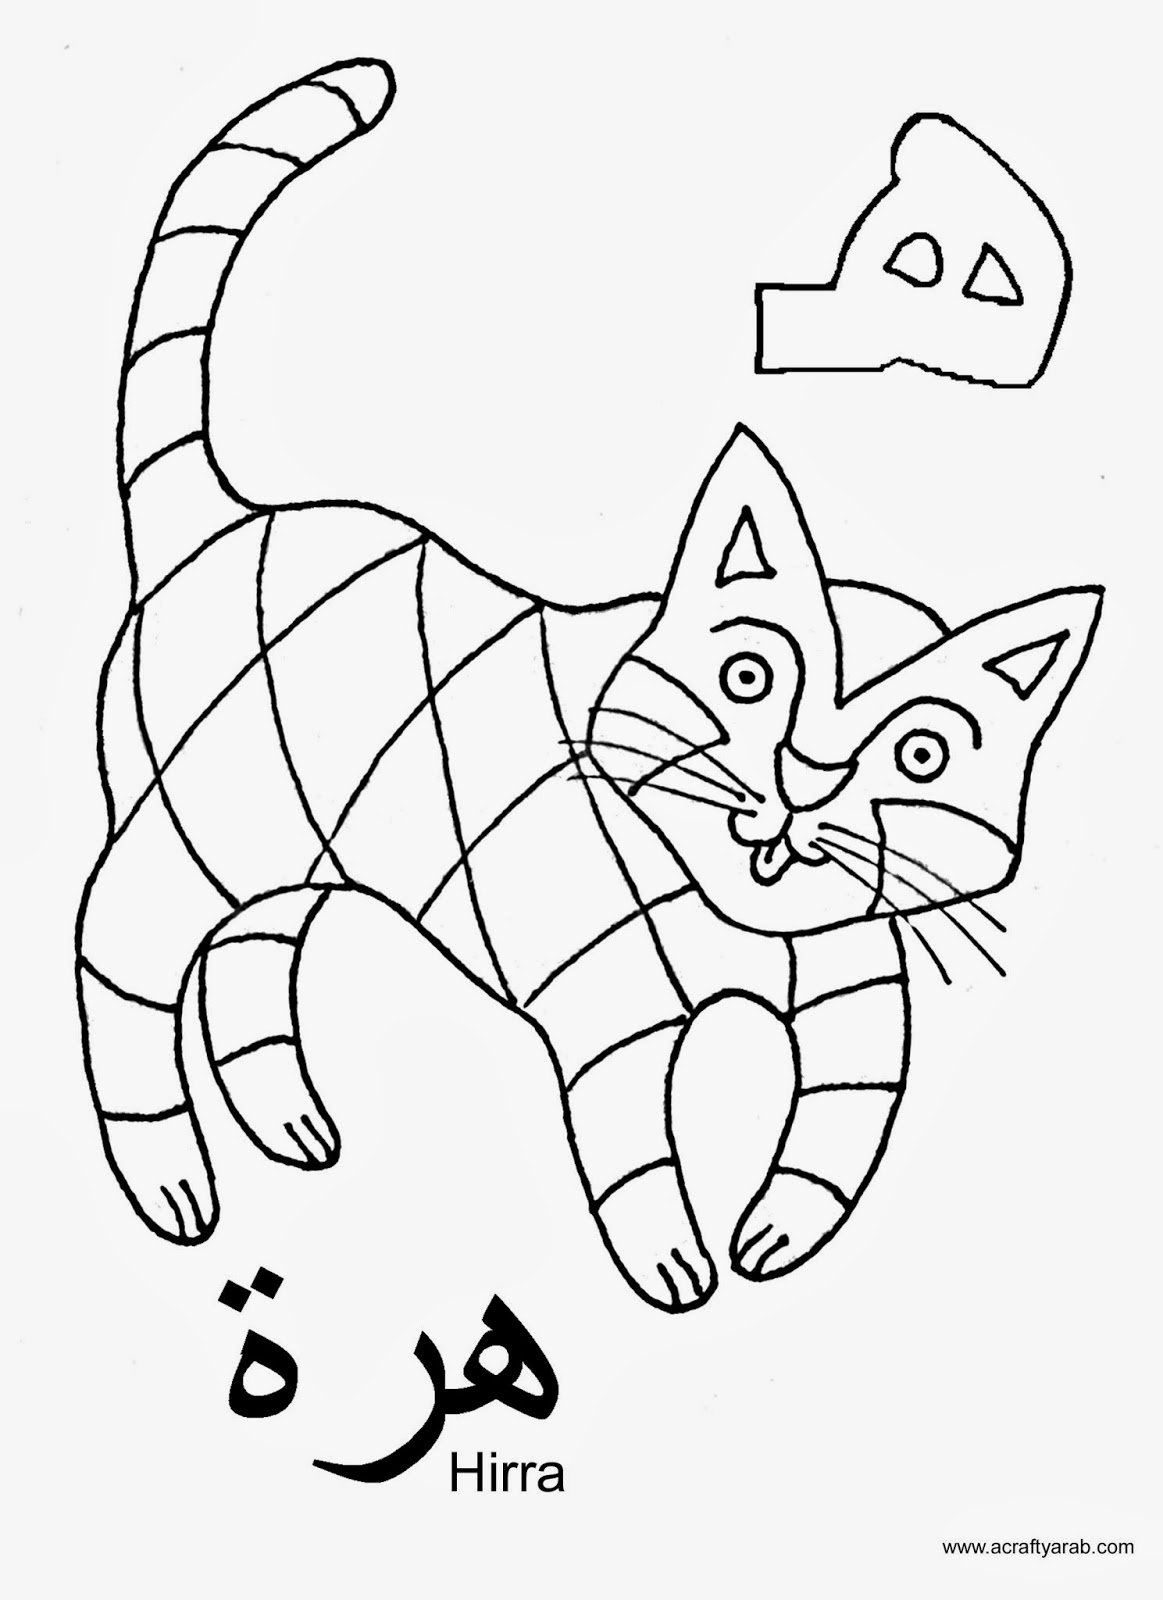 Uncategorized Arabic Coloring Pages arabic alphabet coloring pages haa is for hirra a crafty arab